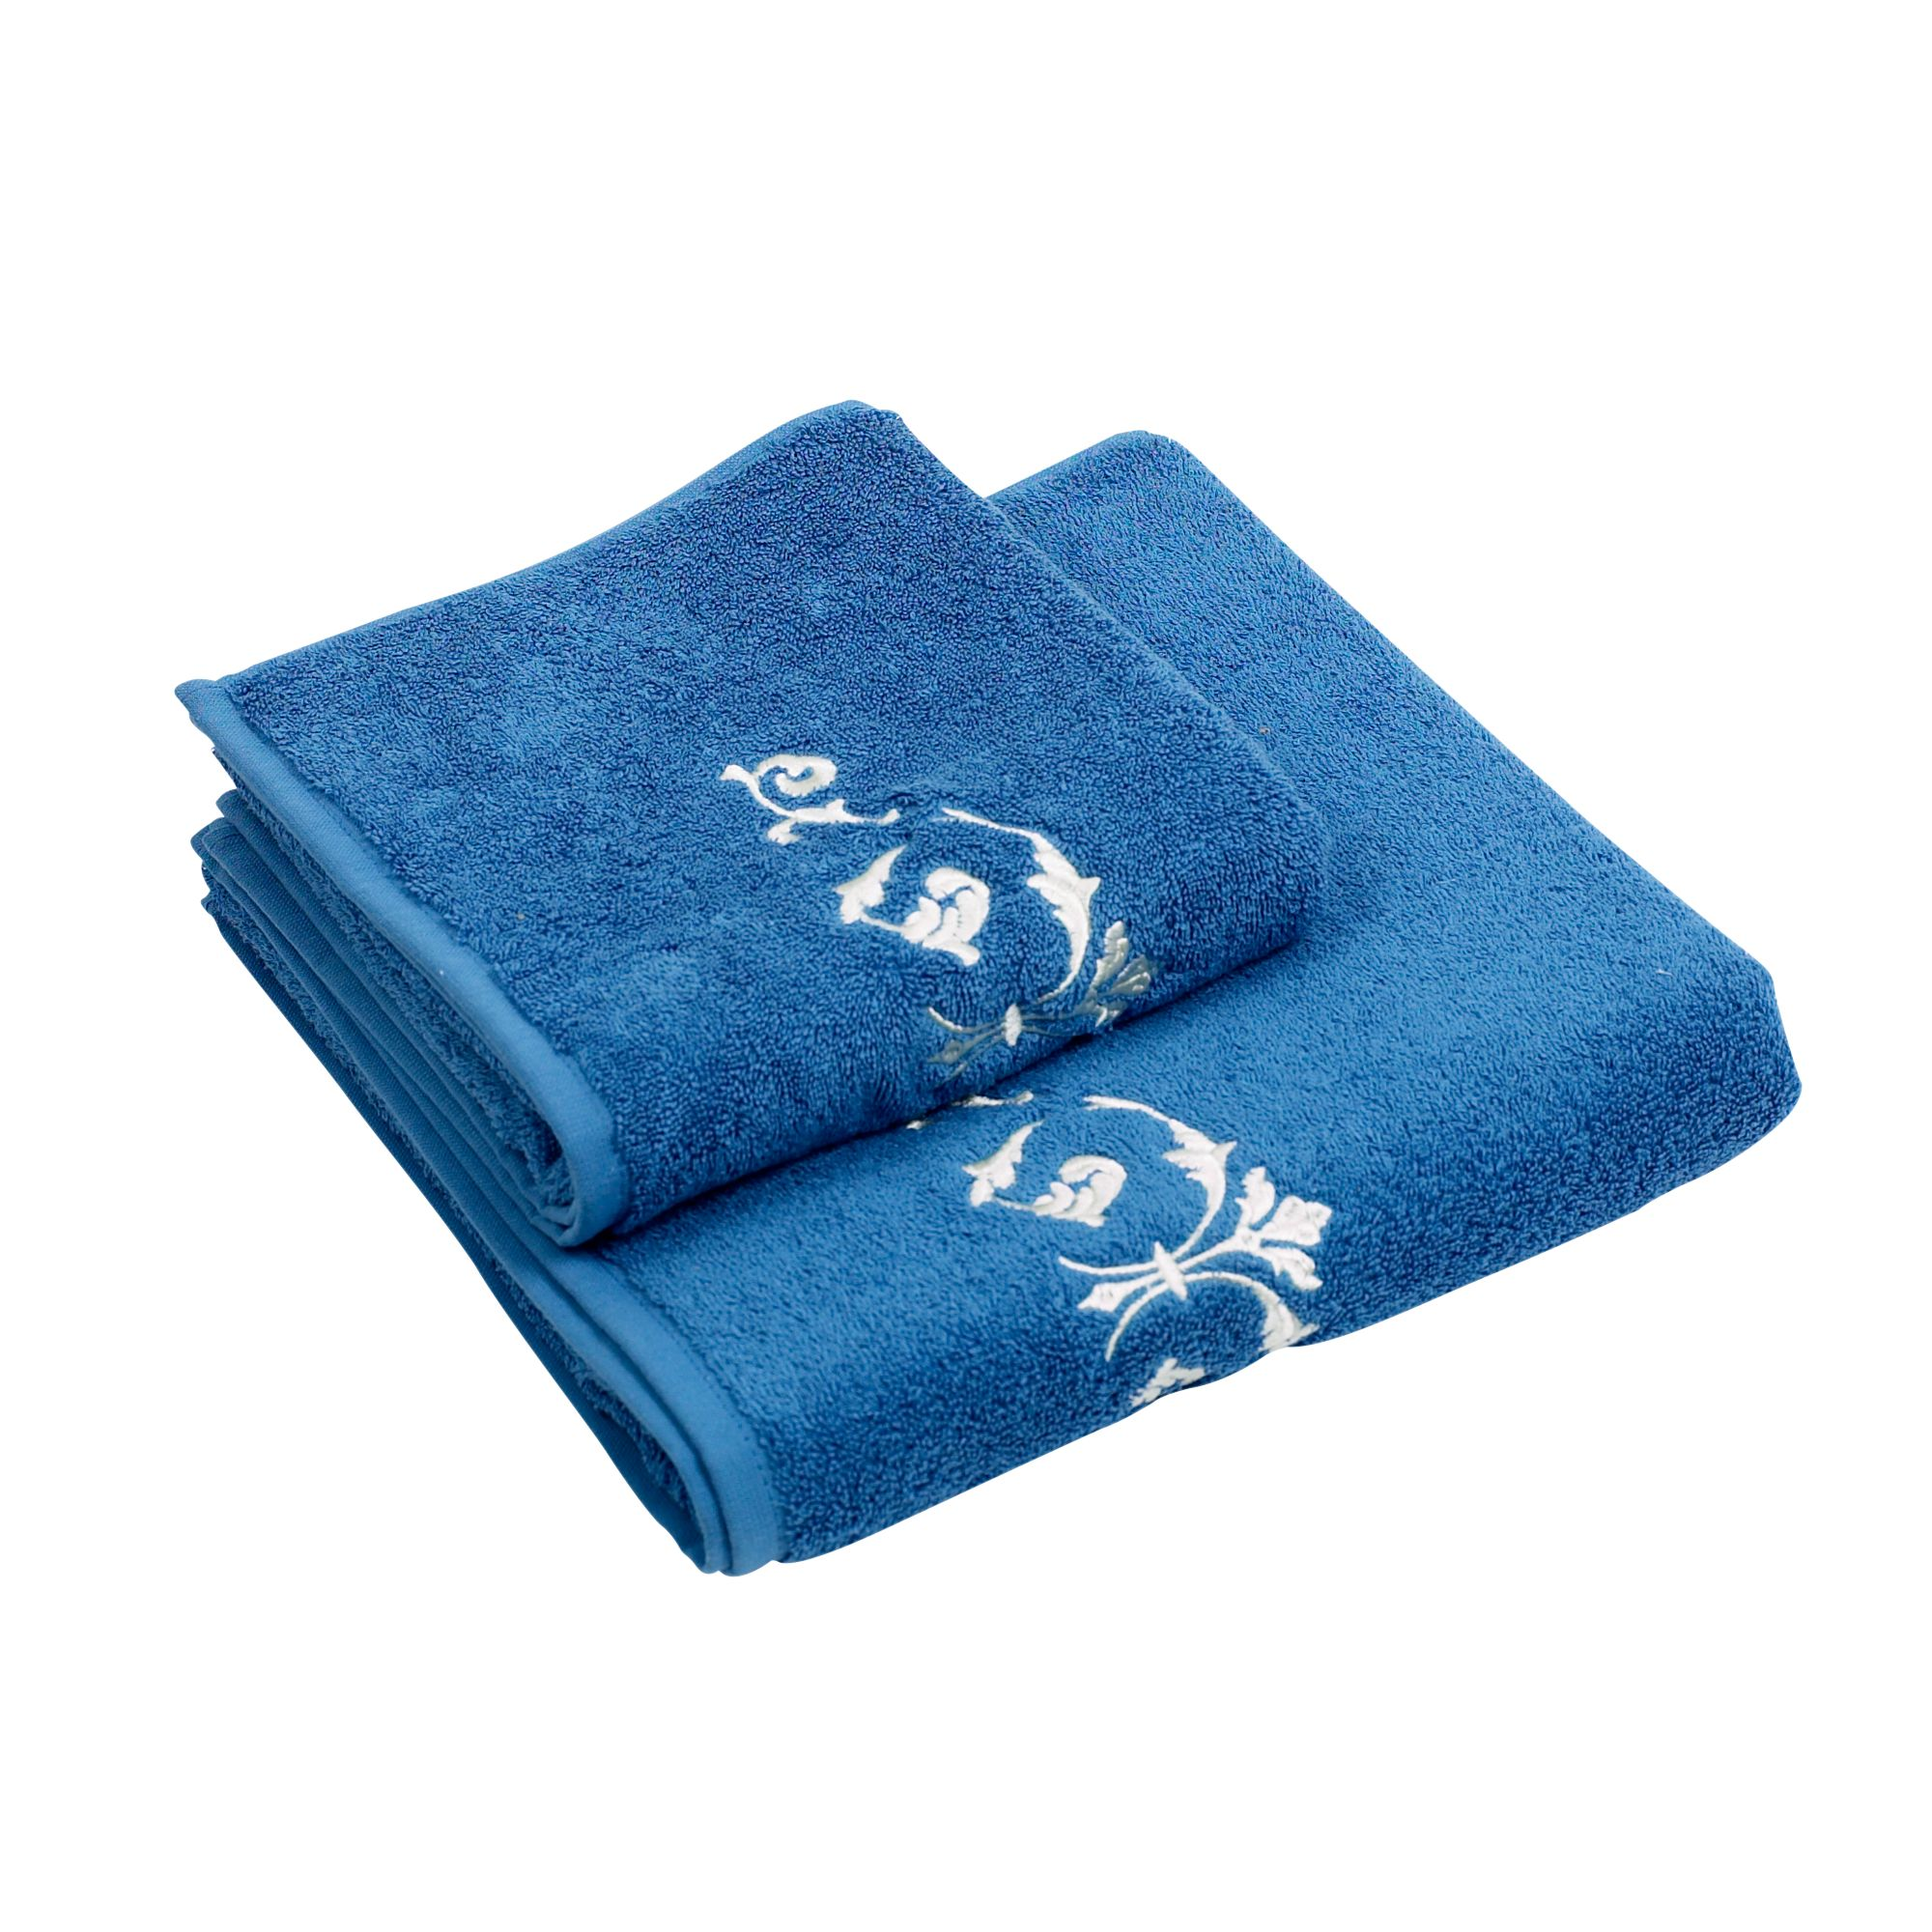 Arabesque embroidered bath towel